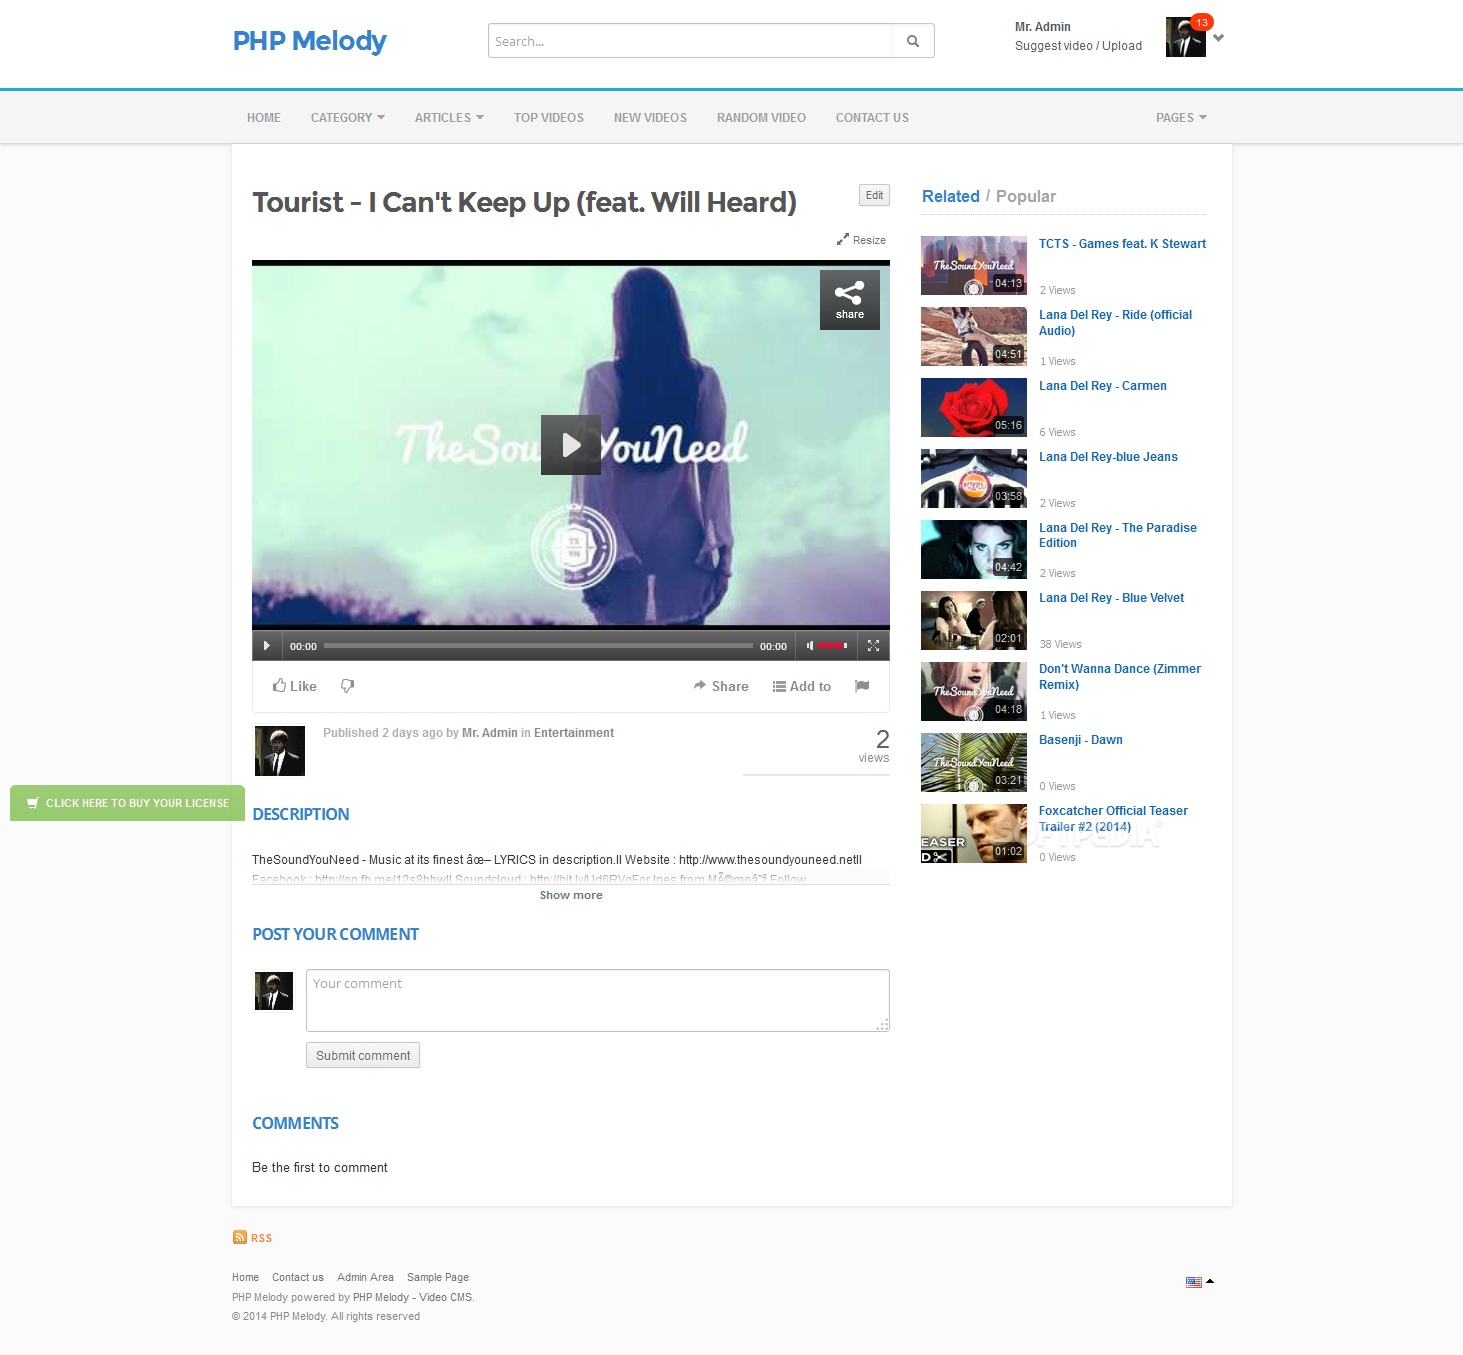 PHP Melody - The PHP Melody video pages look very similar to YouTube pages